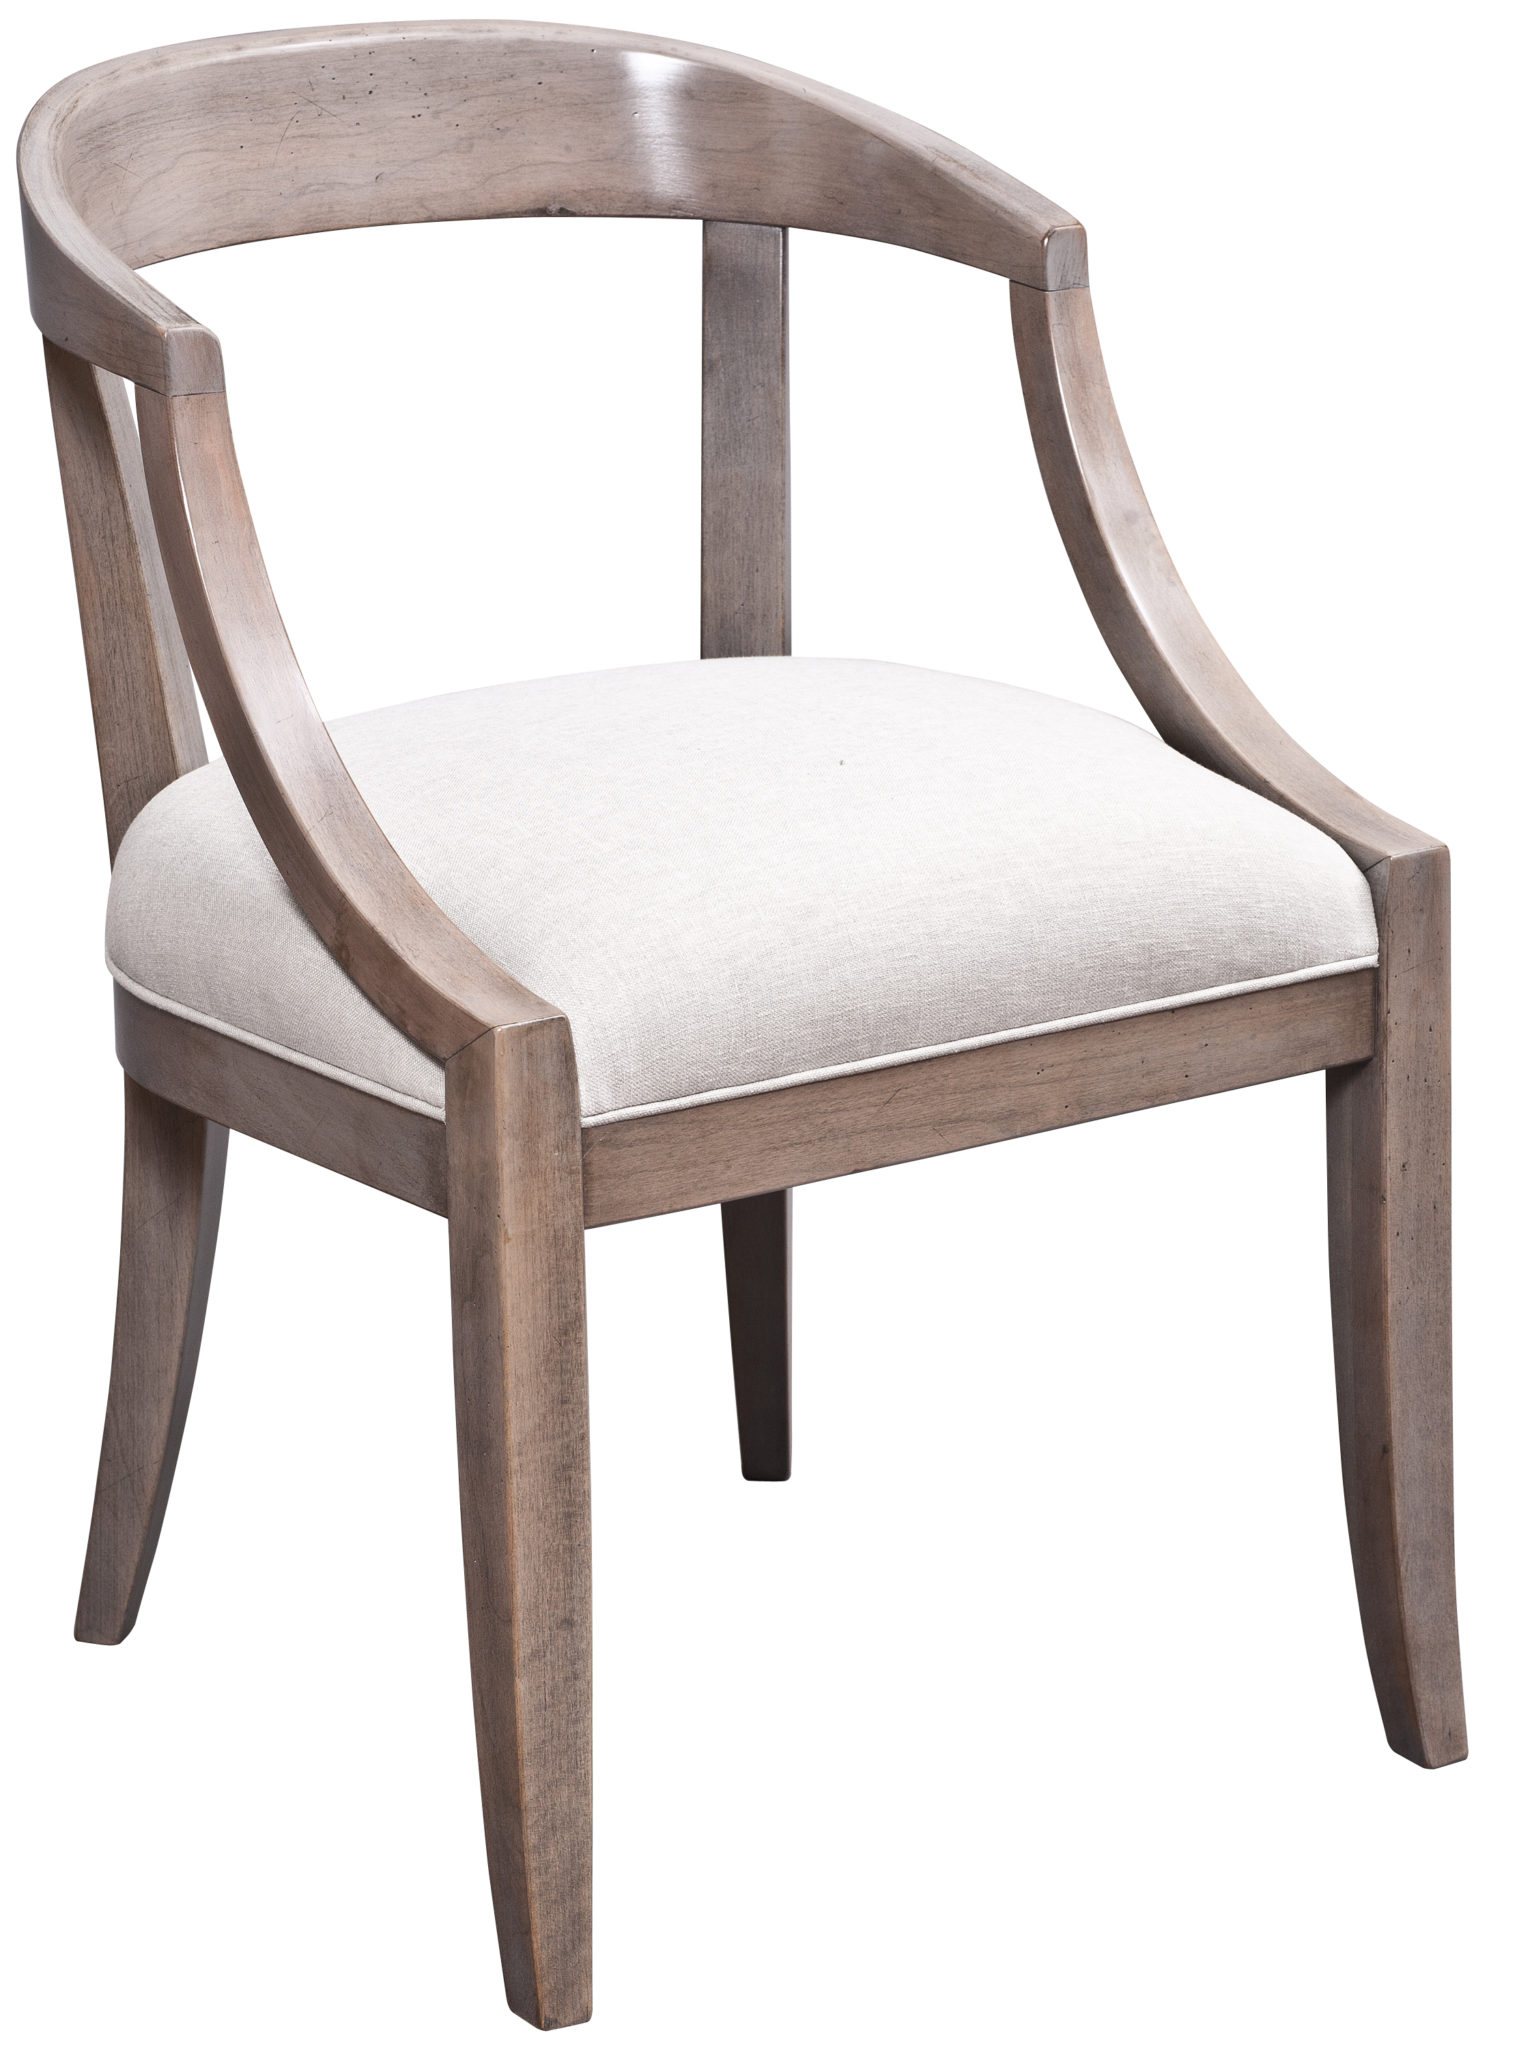 Anna Chair Image